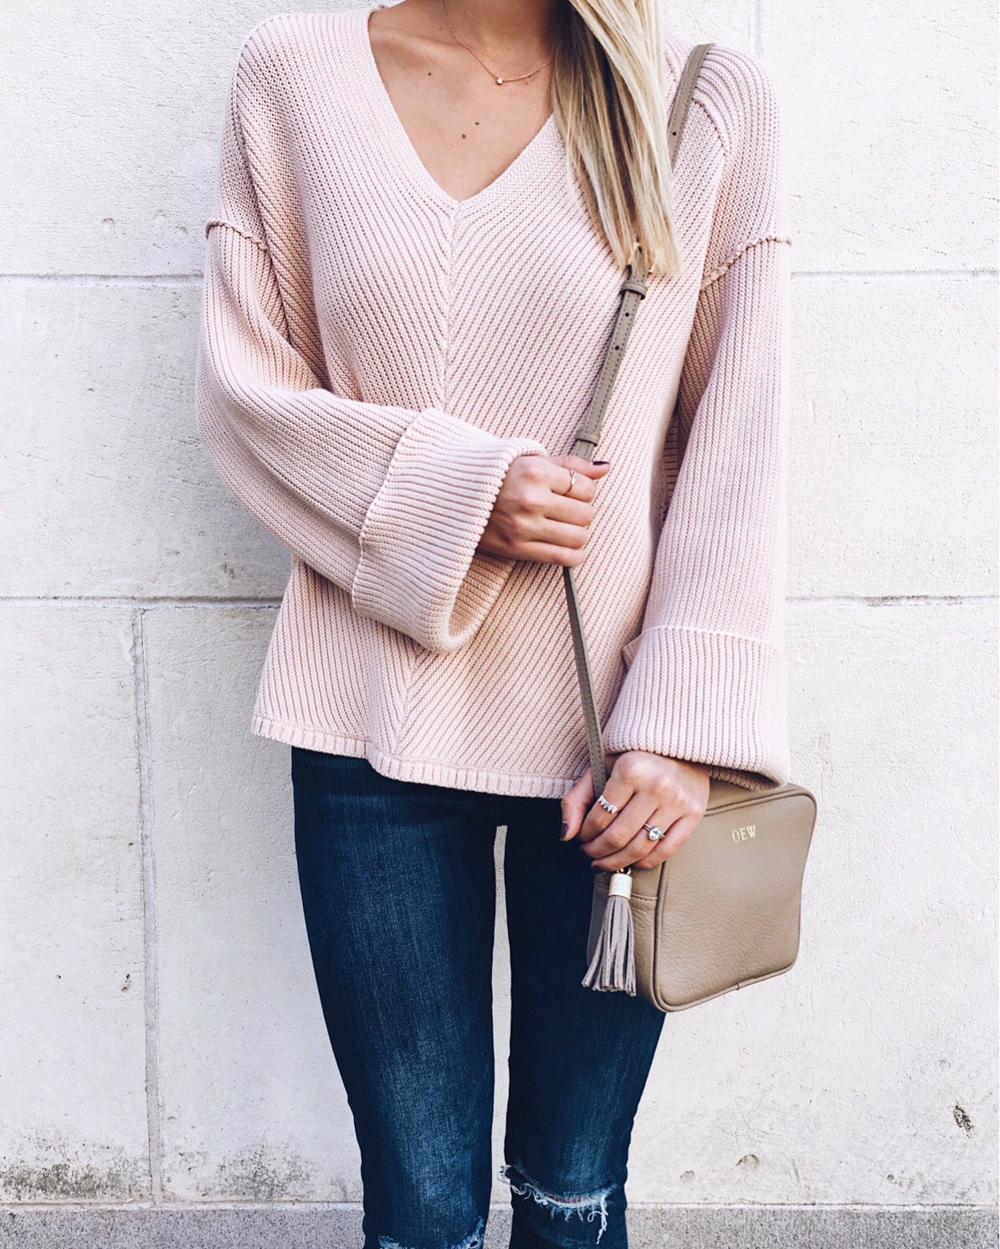 livvyland-blog-olivia-watson-free-people-cozy-oversize-sweater-blush-pink-monogram-handbag